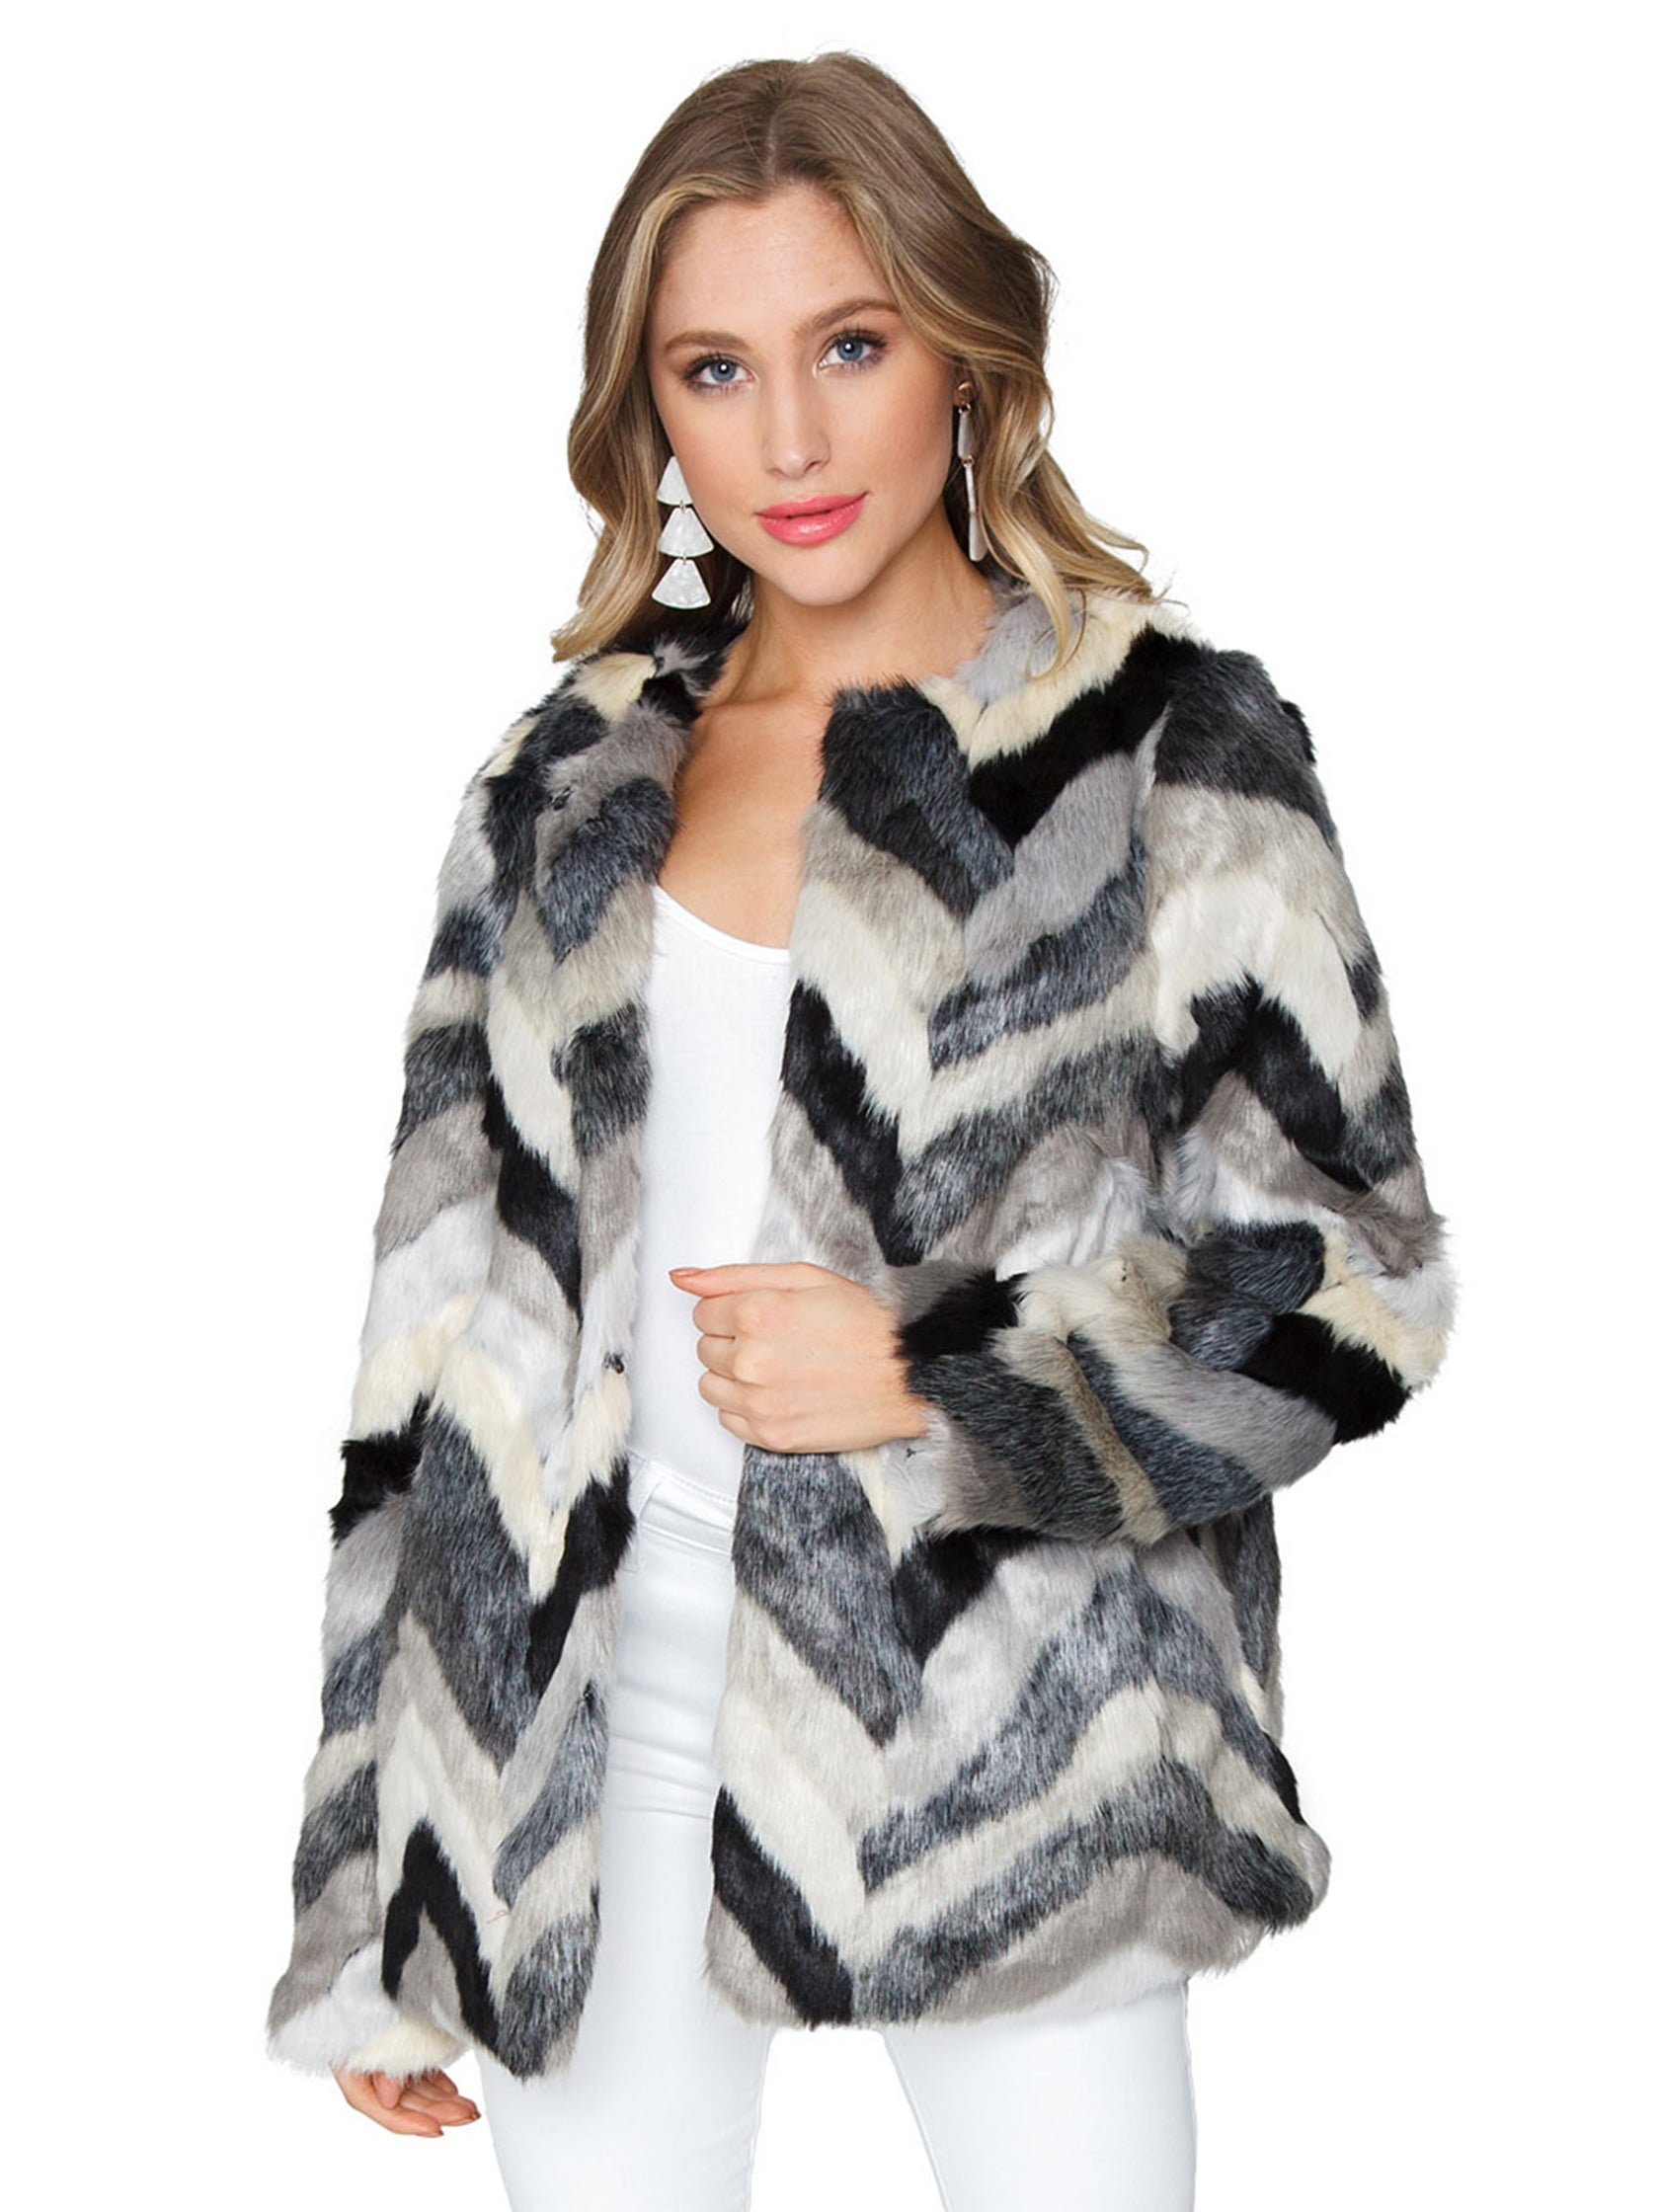 Woman wearing a jacket rental from FashionPass called Chevron Faux Fur Jacket